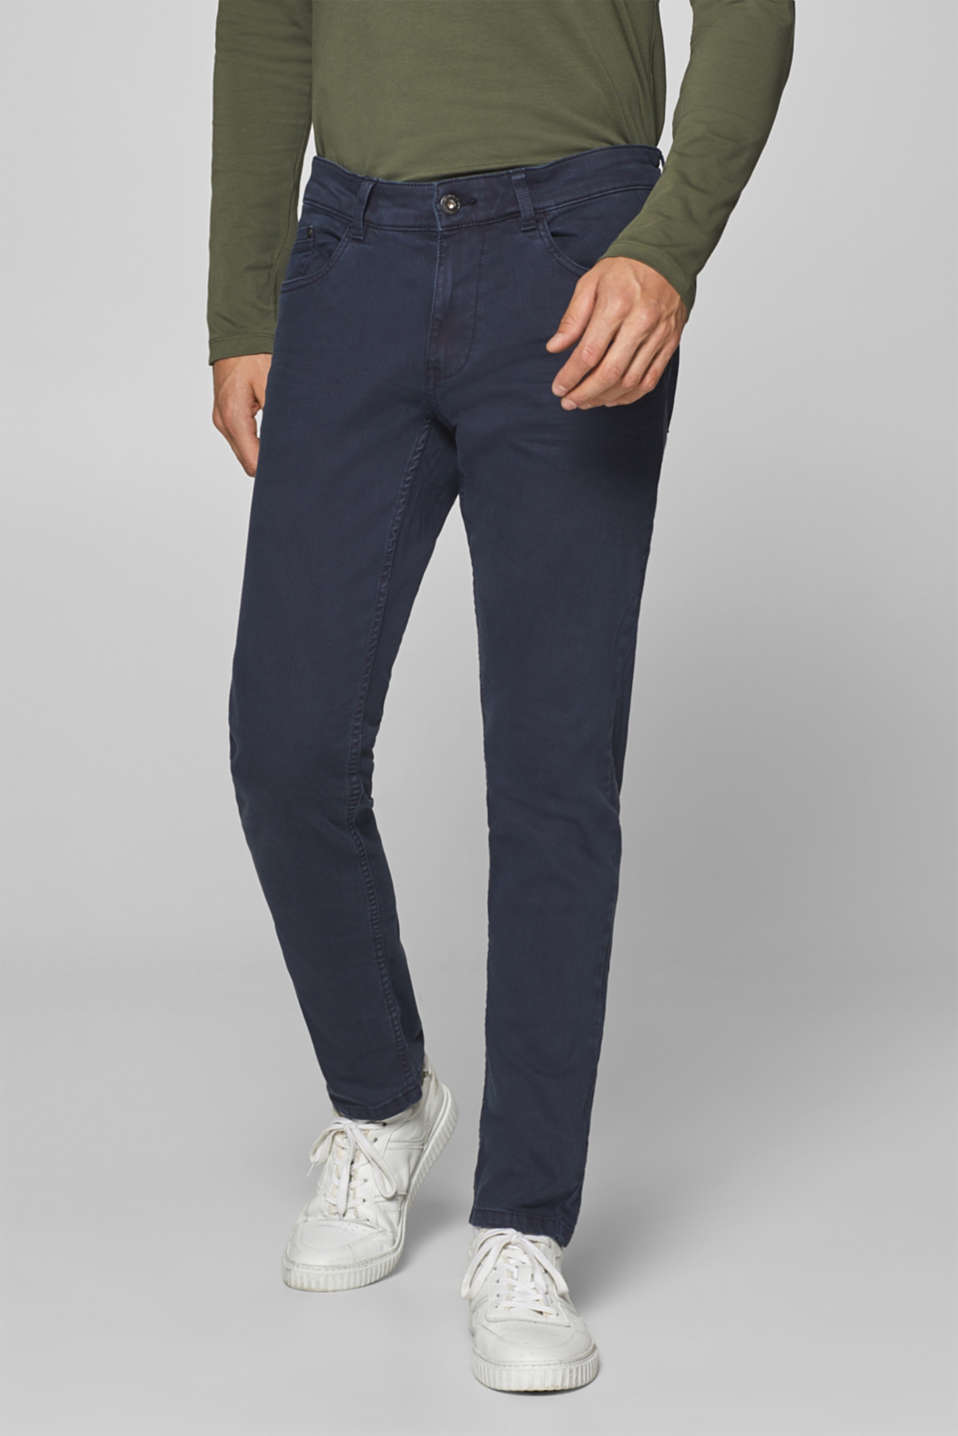 edc - Stretch jeans in trend colours